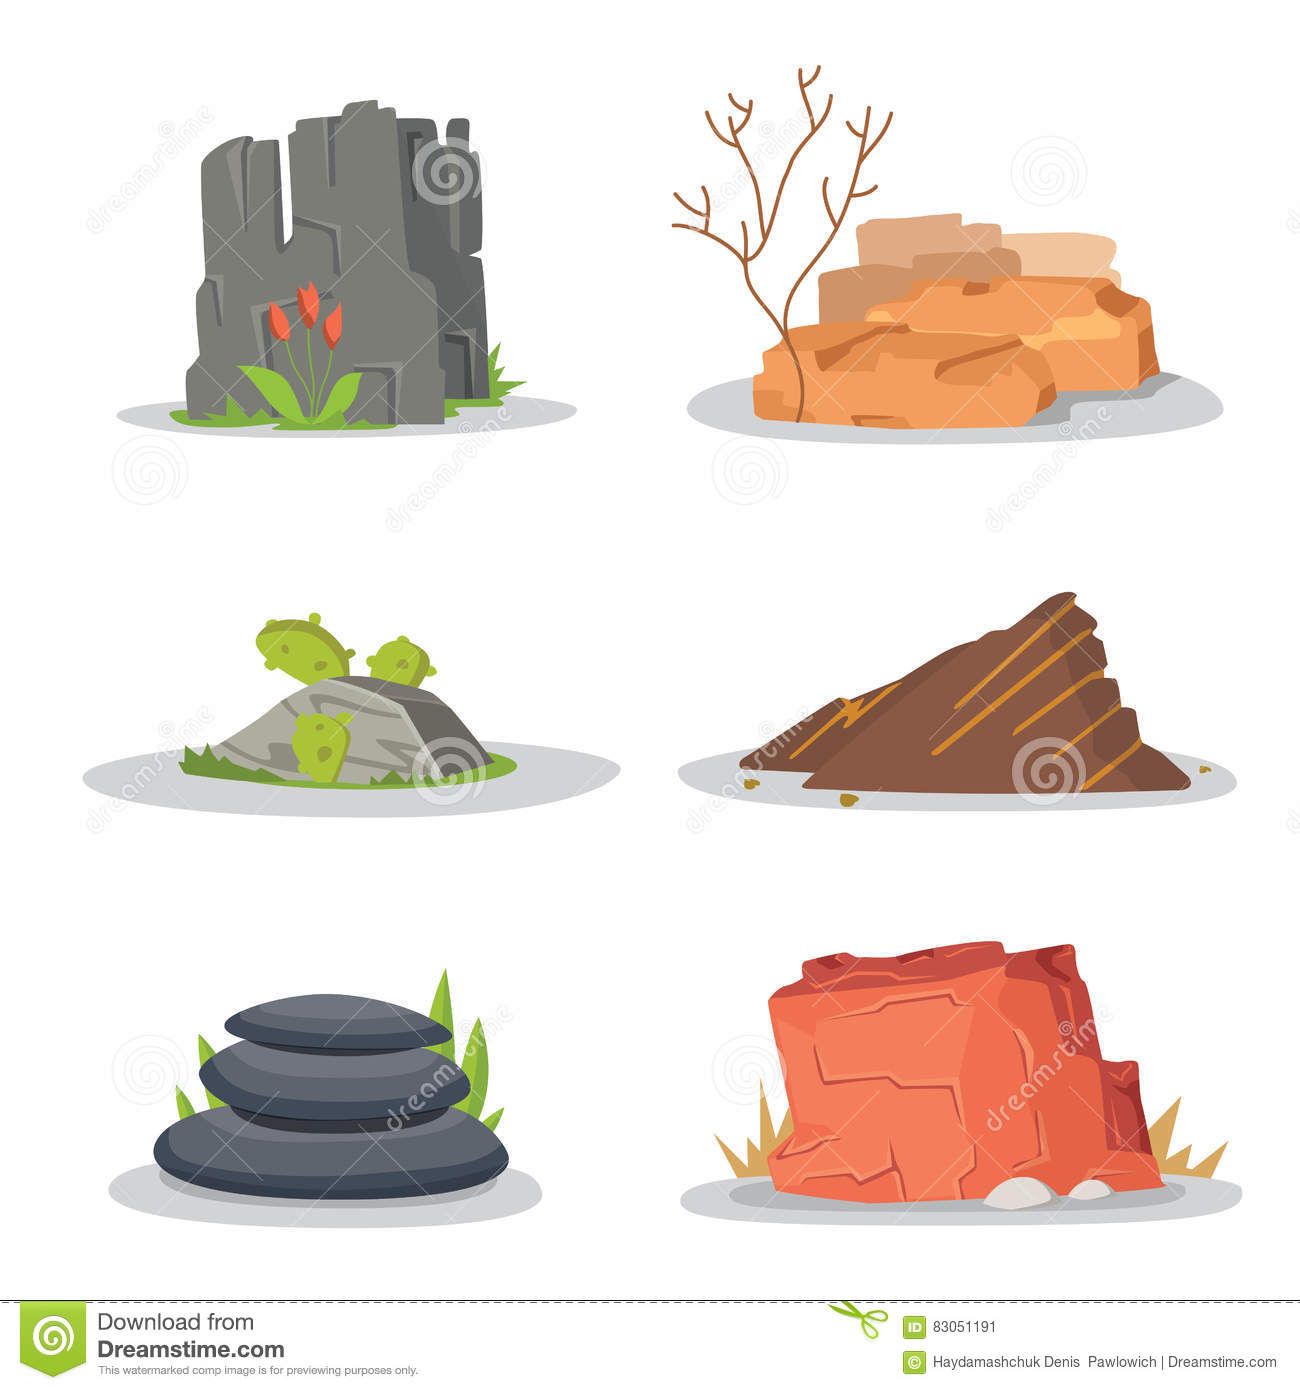 Boulder clipart clip art. Rubble pencil and in